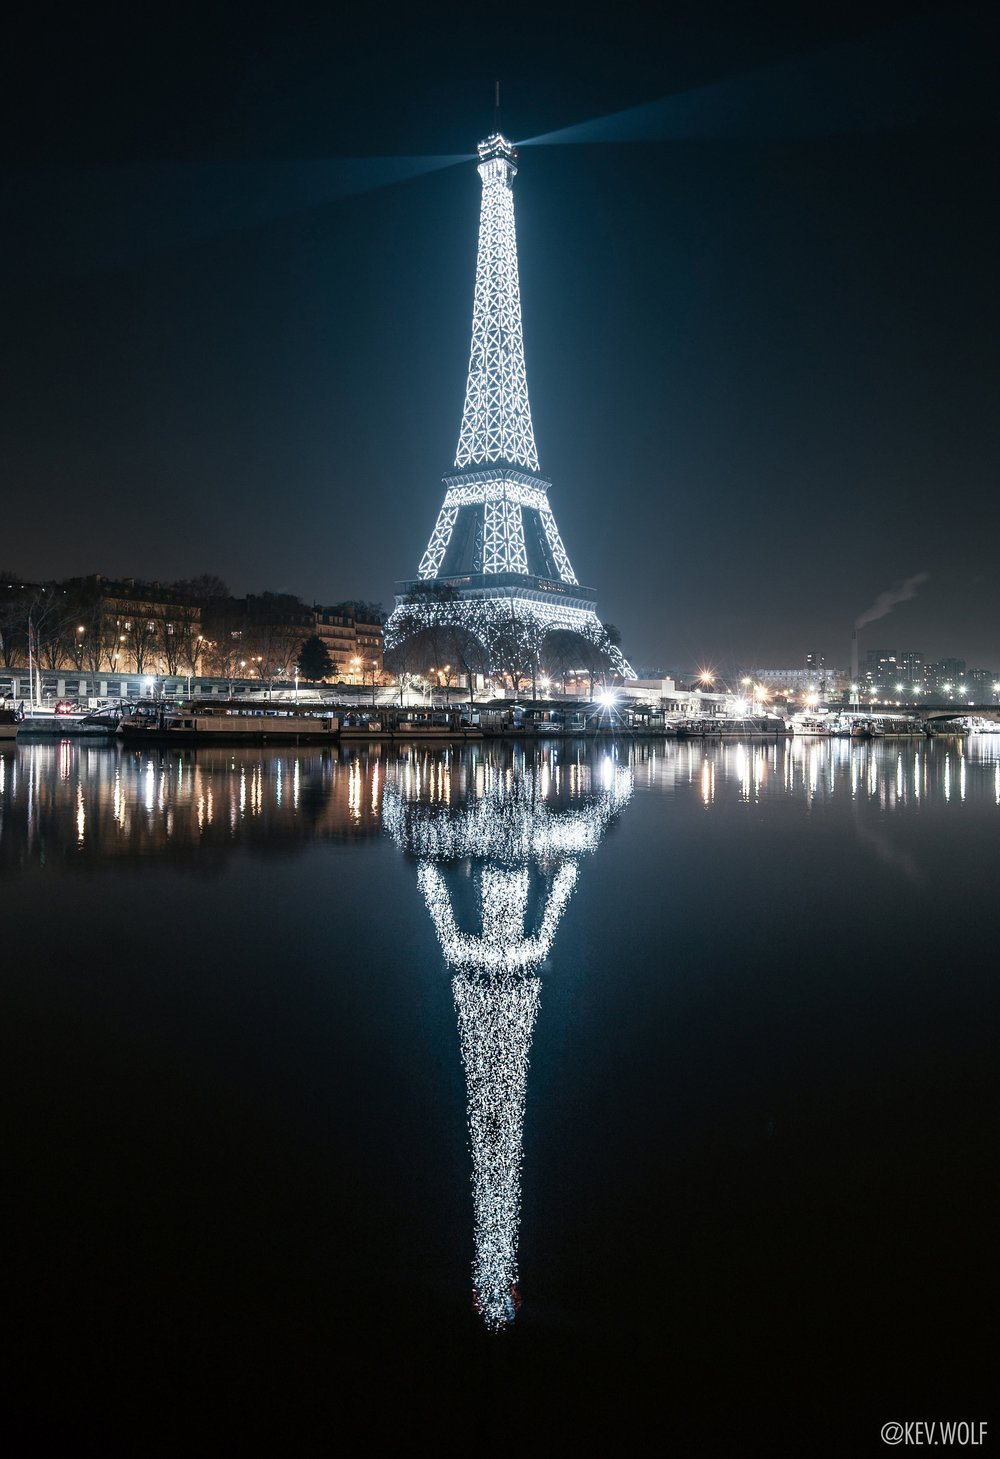 the eiffel tower - 715k views (front page of reddit r/pics)